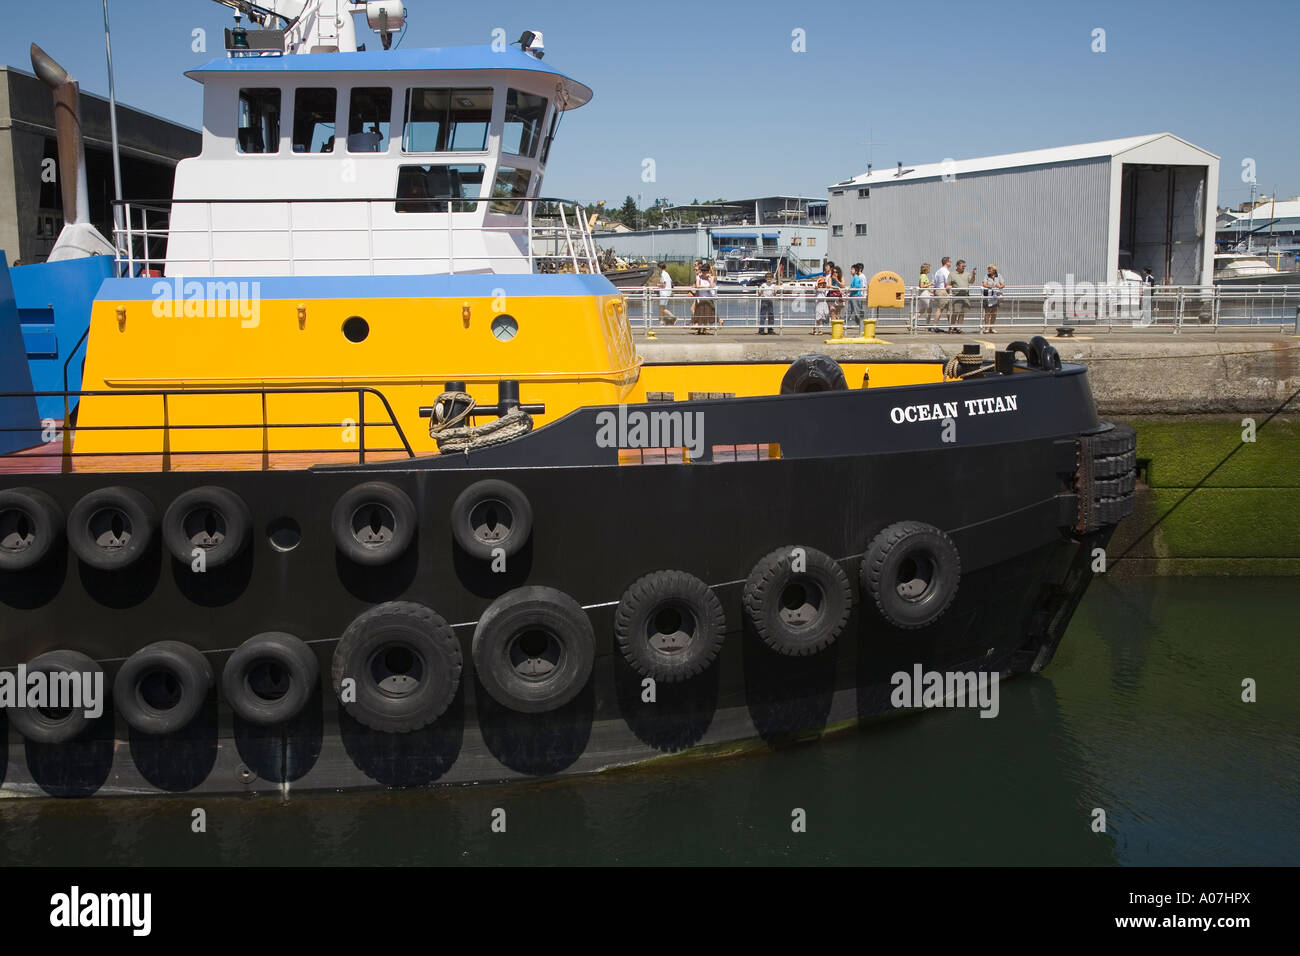 Tugboat protected by car tyres on prow Hiram M Chittenden Lock on the Lake Washington Ship Canal Seattle USA - Stock Image